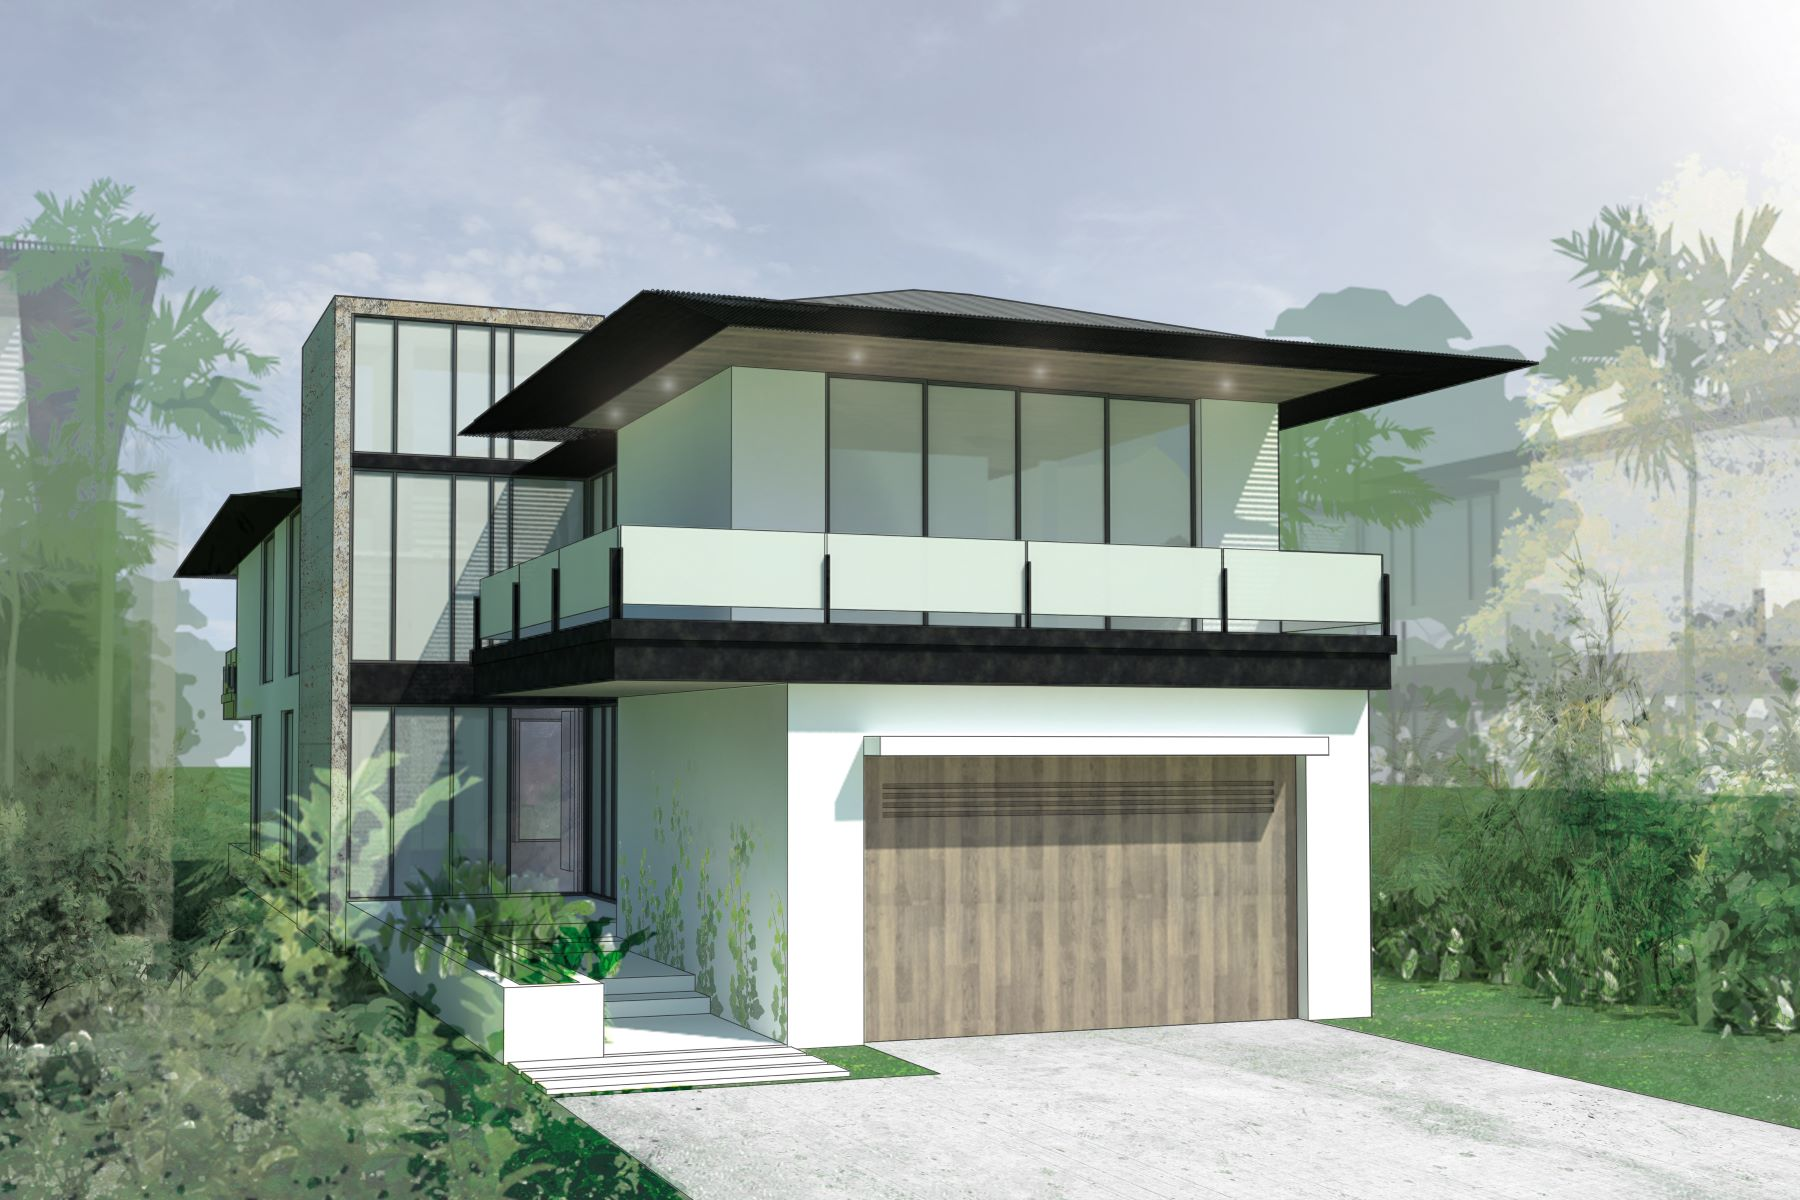 Property のために 売買 アット Direct Riverfront New Construction 4844 S Harbor Drive Vero Beach, フロリダ 32967 アメリカ